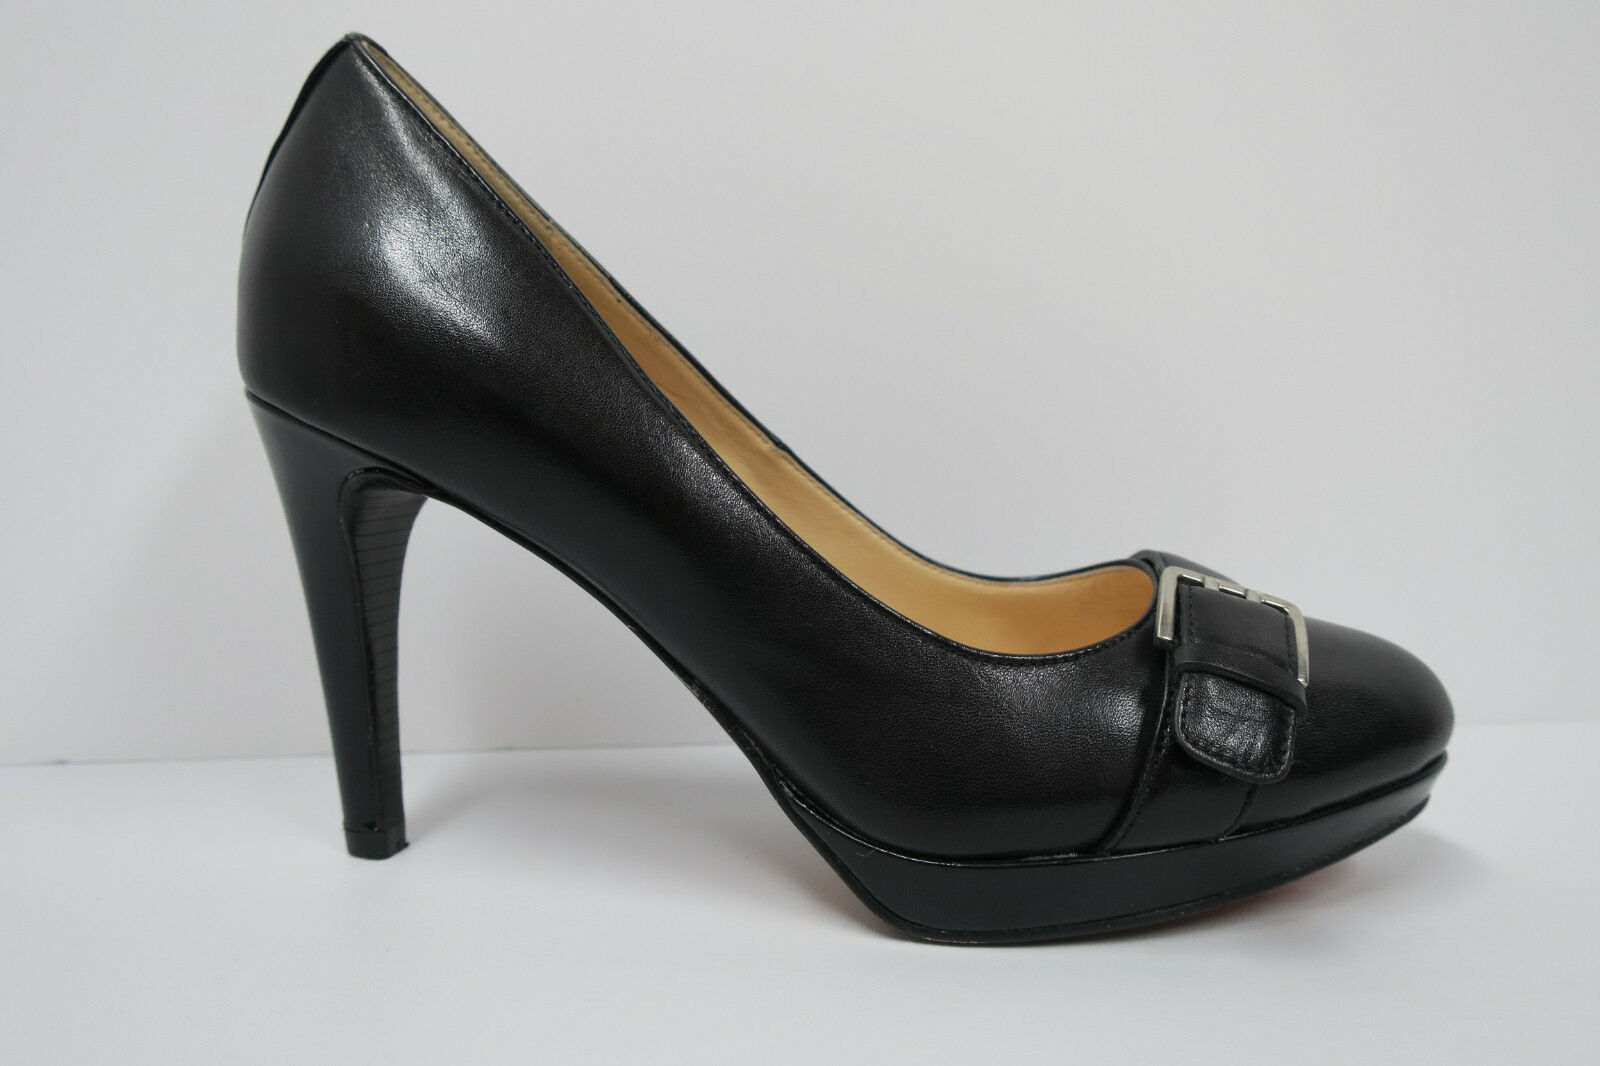 COLE HAAN AIR CHELSEA BUCKLE PUMP Black 8 B Platform Heels